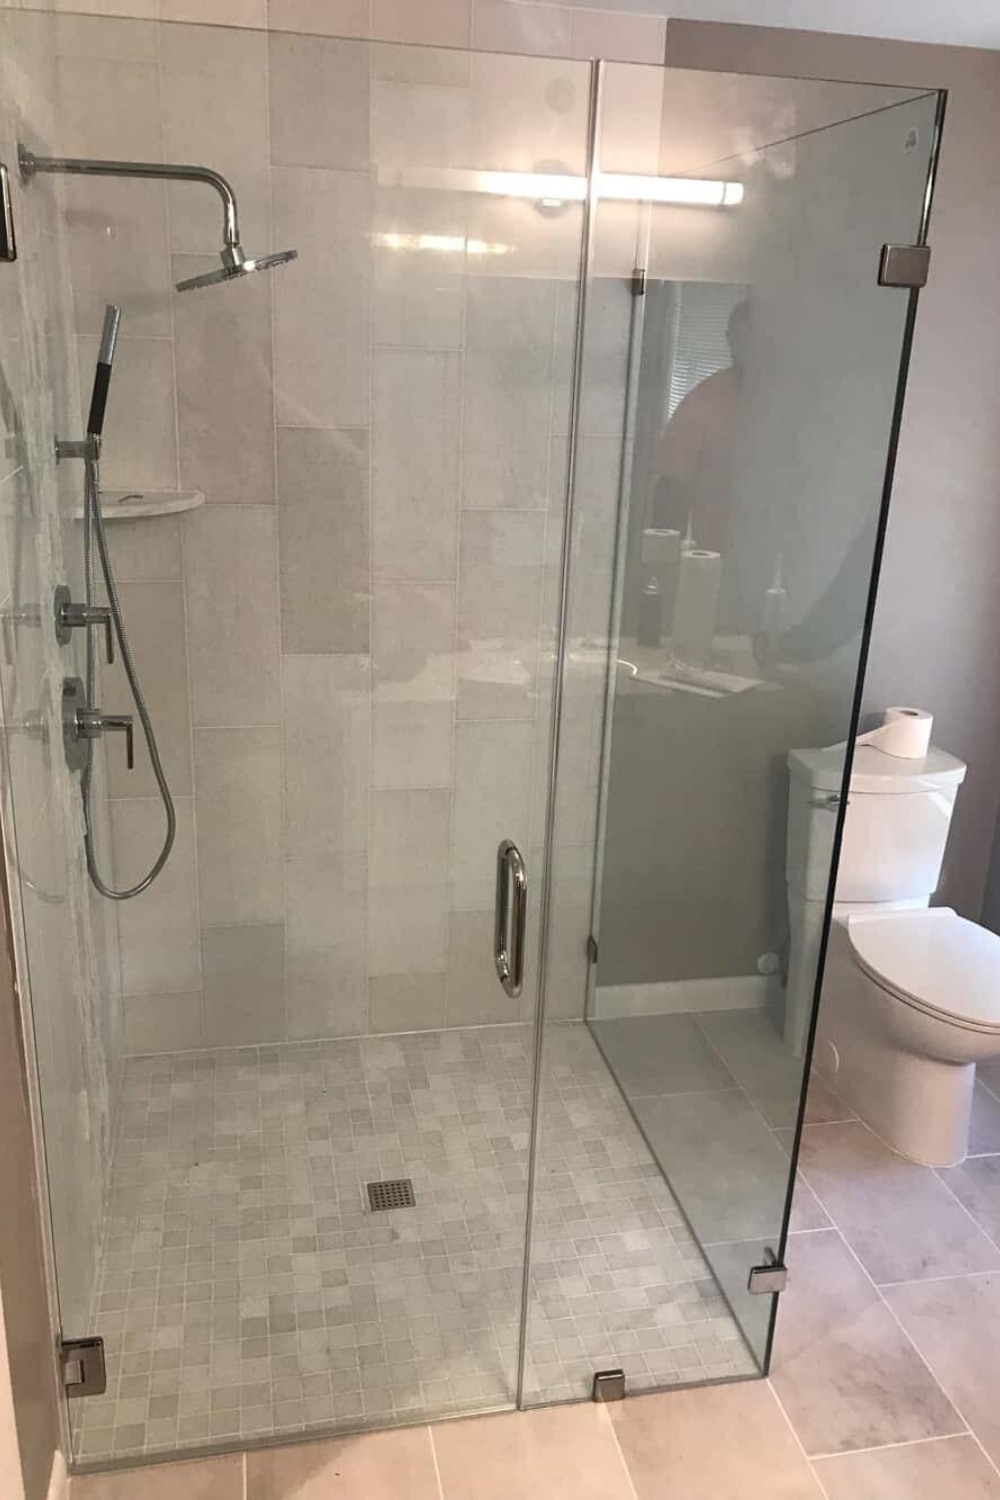 Choose The Right Shower Door For Your Bathroom According To Your Requirement From Our Widest Range Of Glass Shower Doors A In 2020 Glass Shower Glass Shower Enclosures